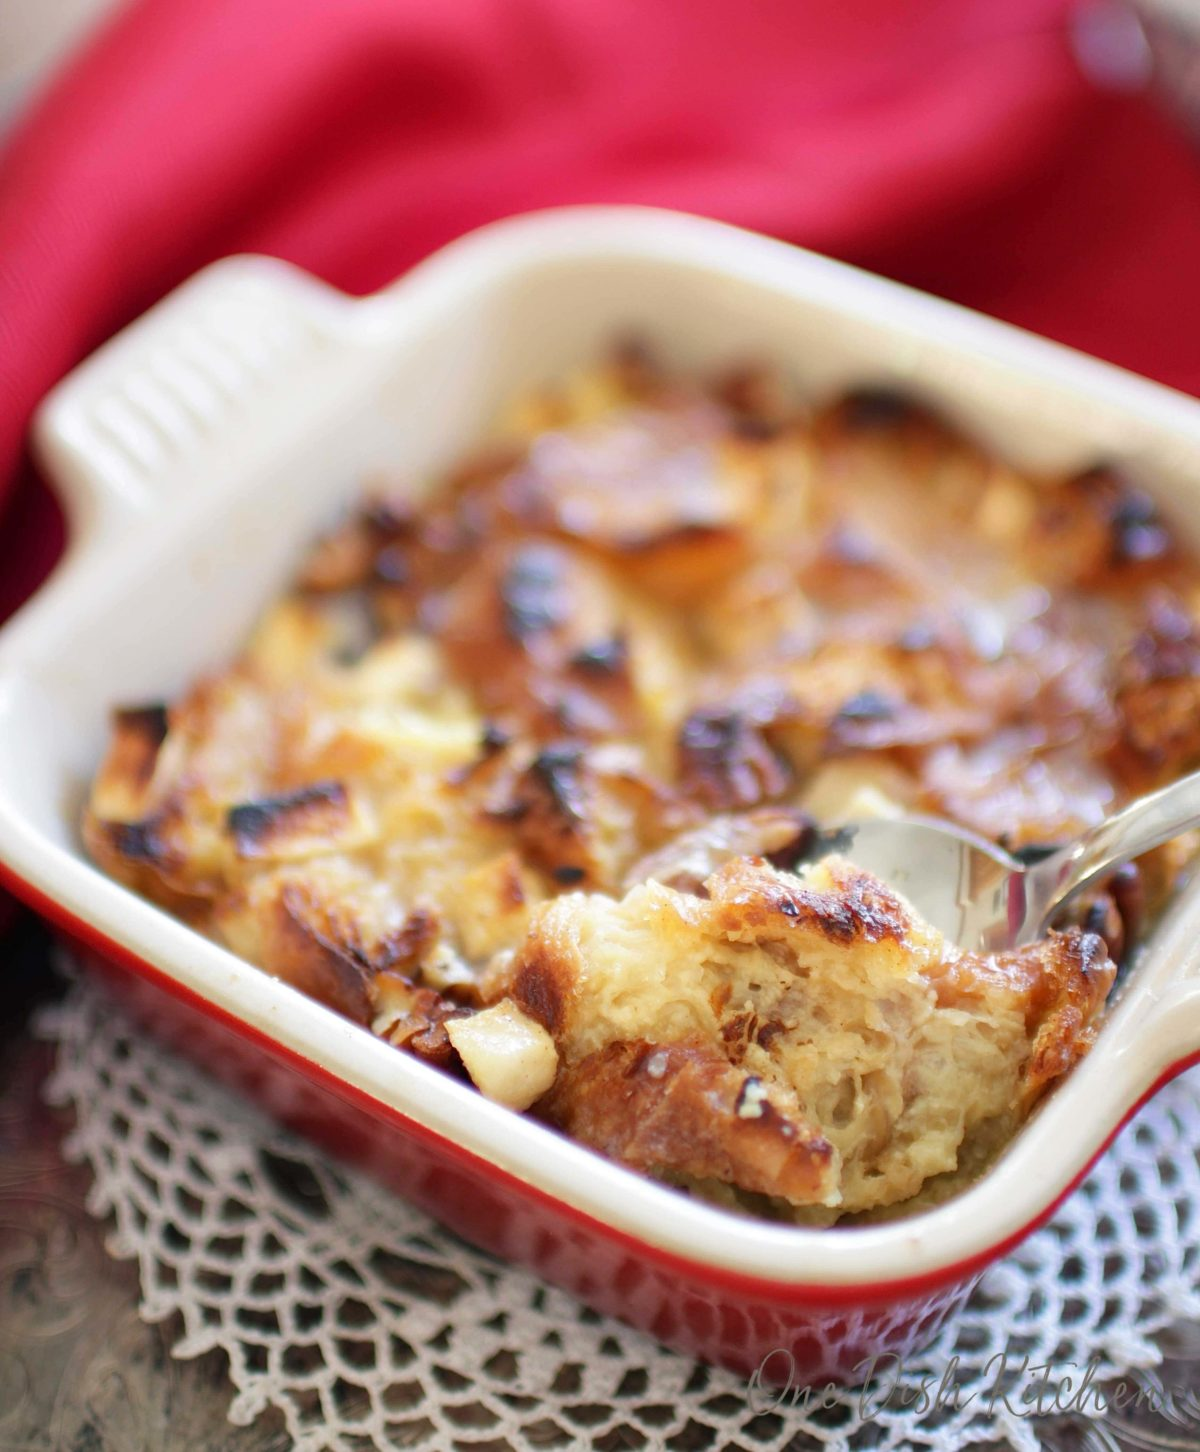 A spoonful of breakfast bread pudding from a small baking dish